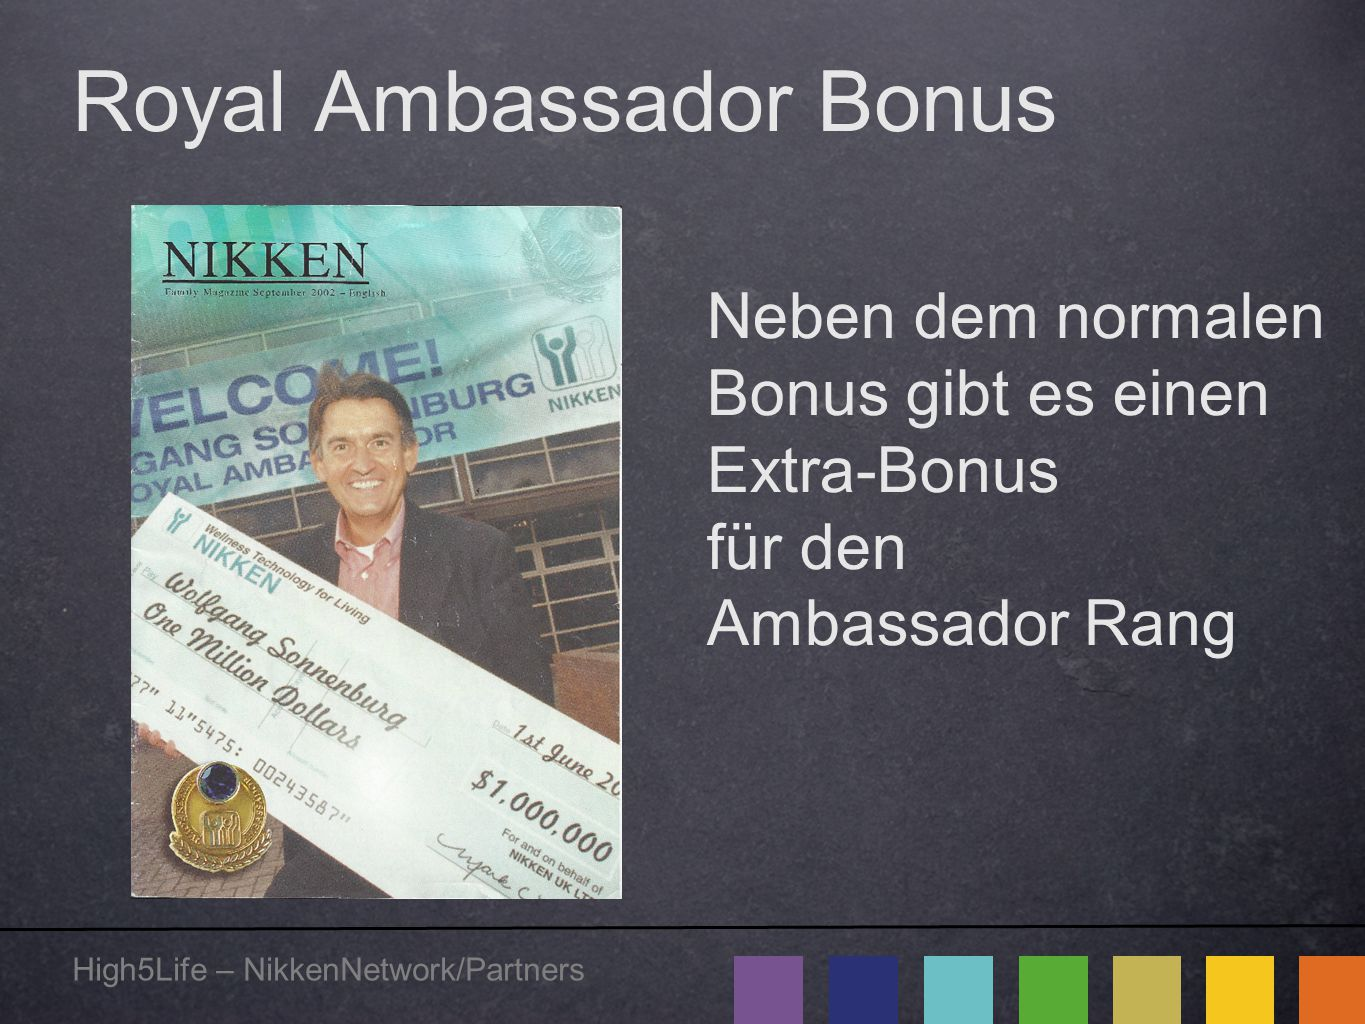 Royal Ambassador Bonus